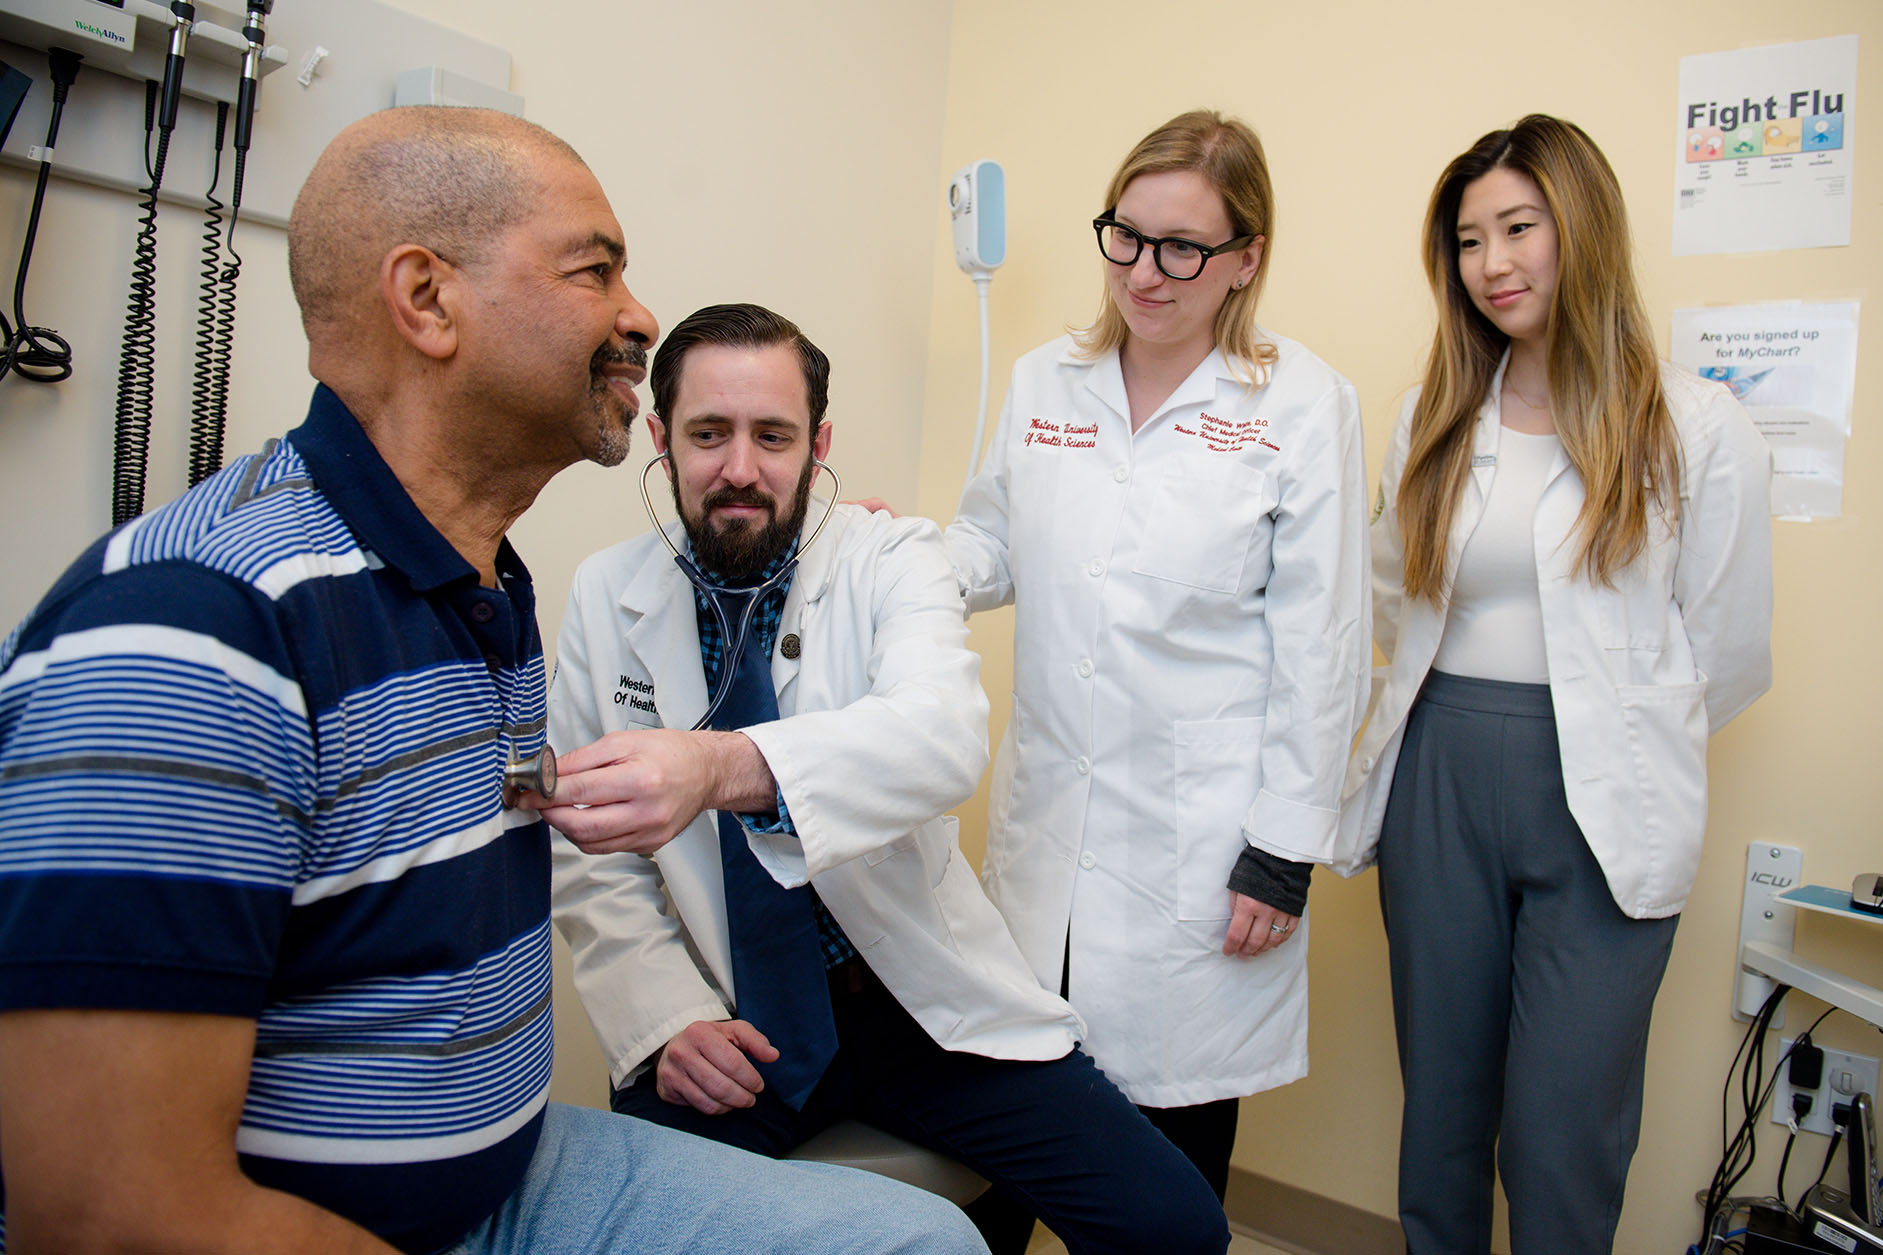 Physician assistant named Best Health Care Job in the U.S.